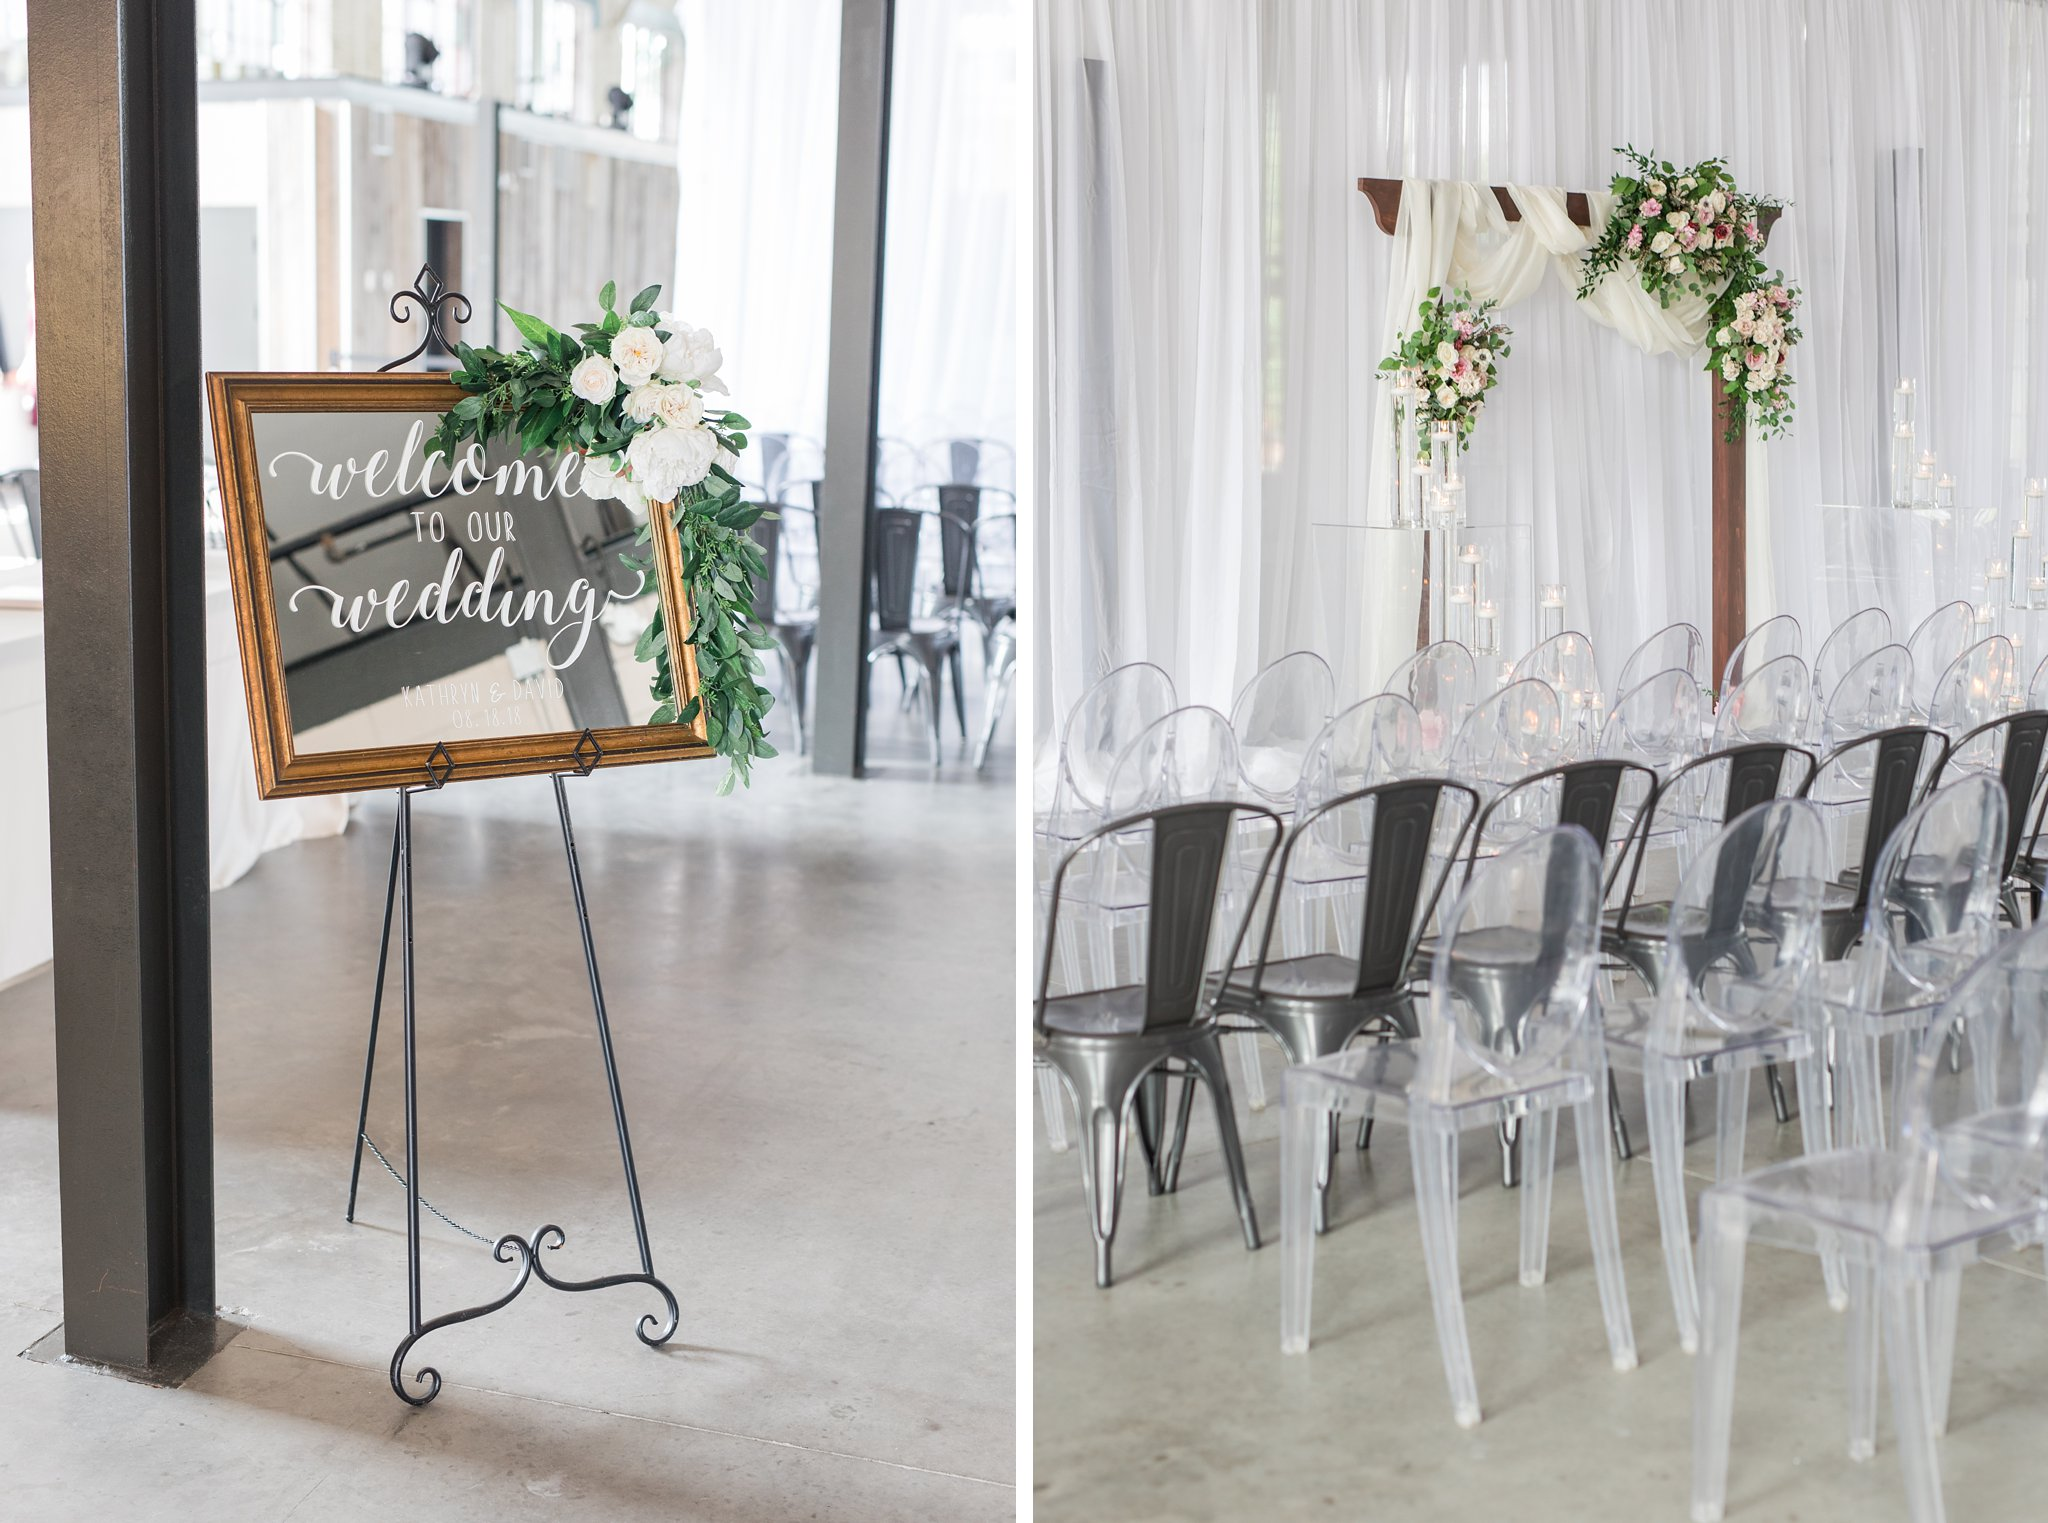 Calligraphy sign welcome to wedding Horticulture Building wedding at Lansdowne Amy Pinder Photography